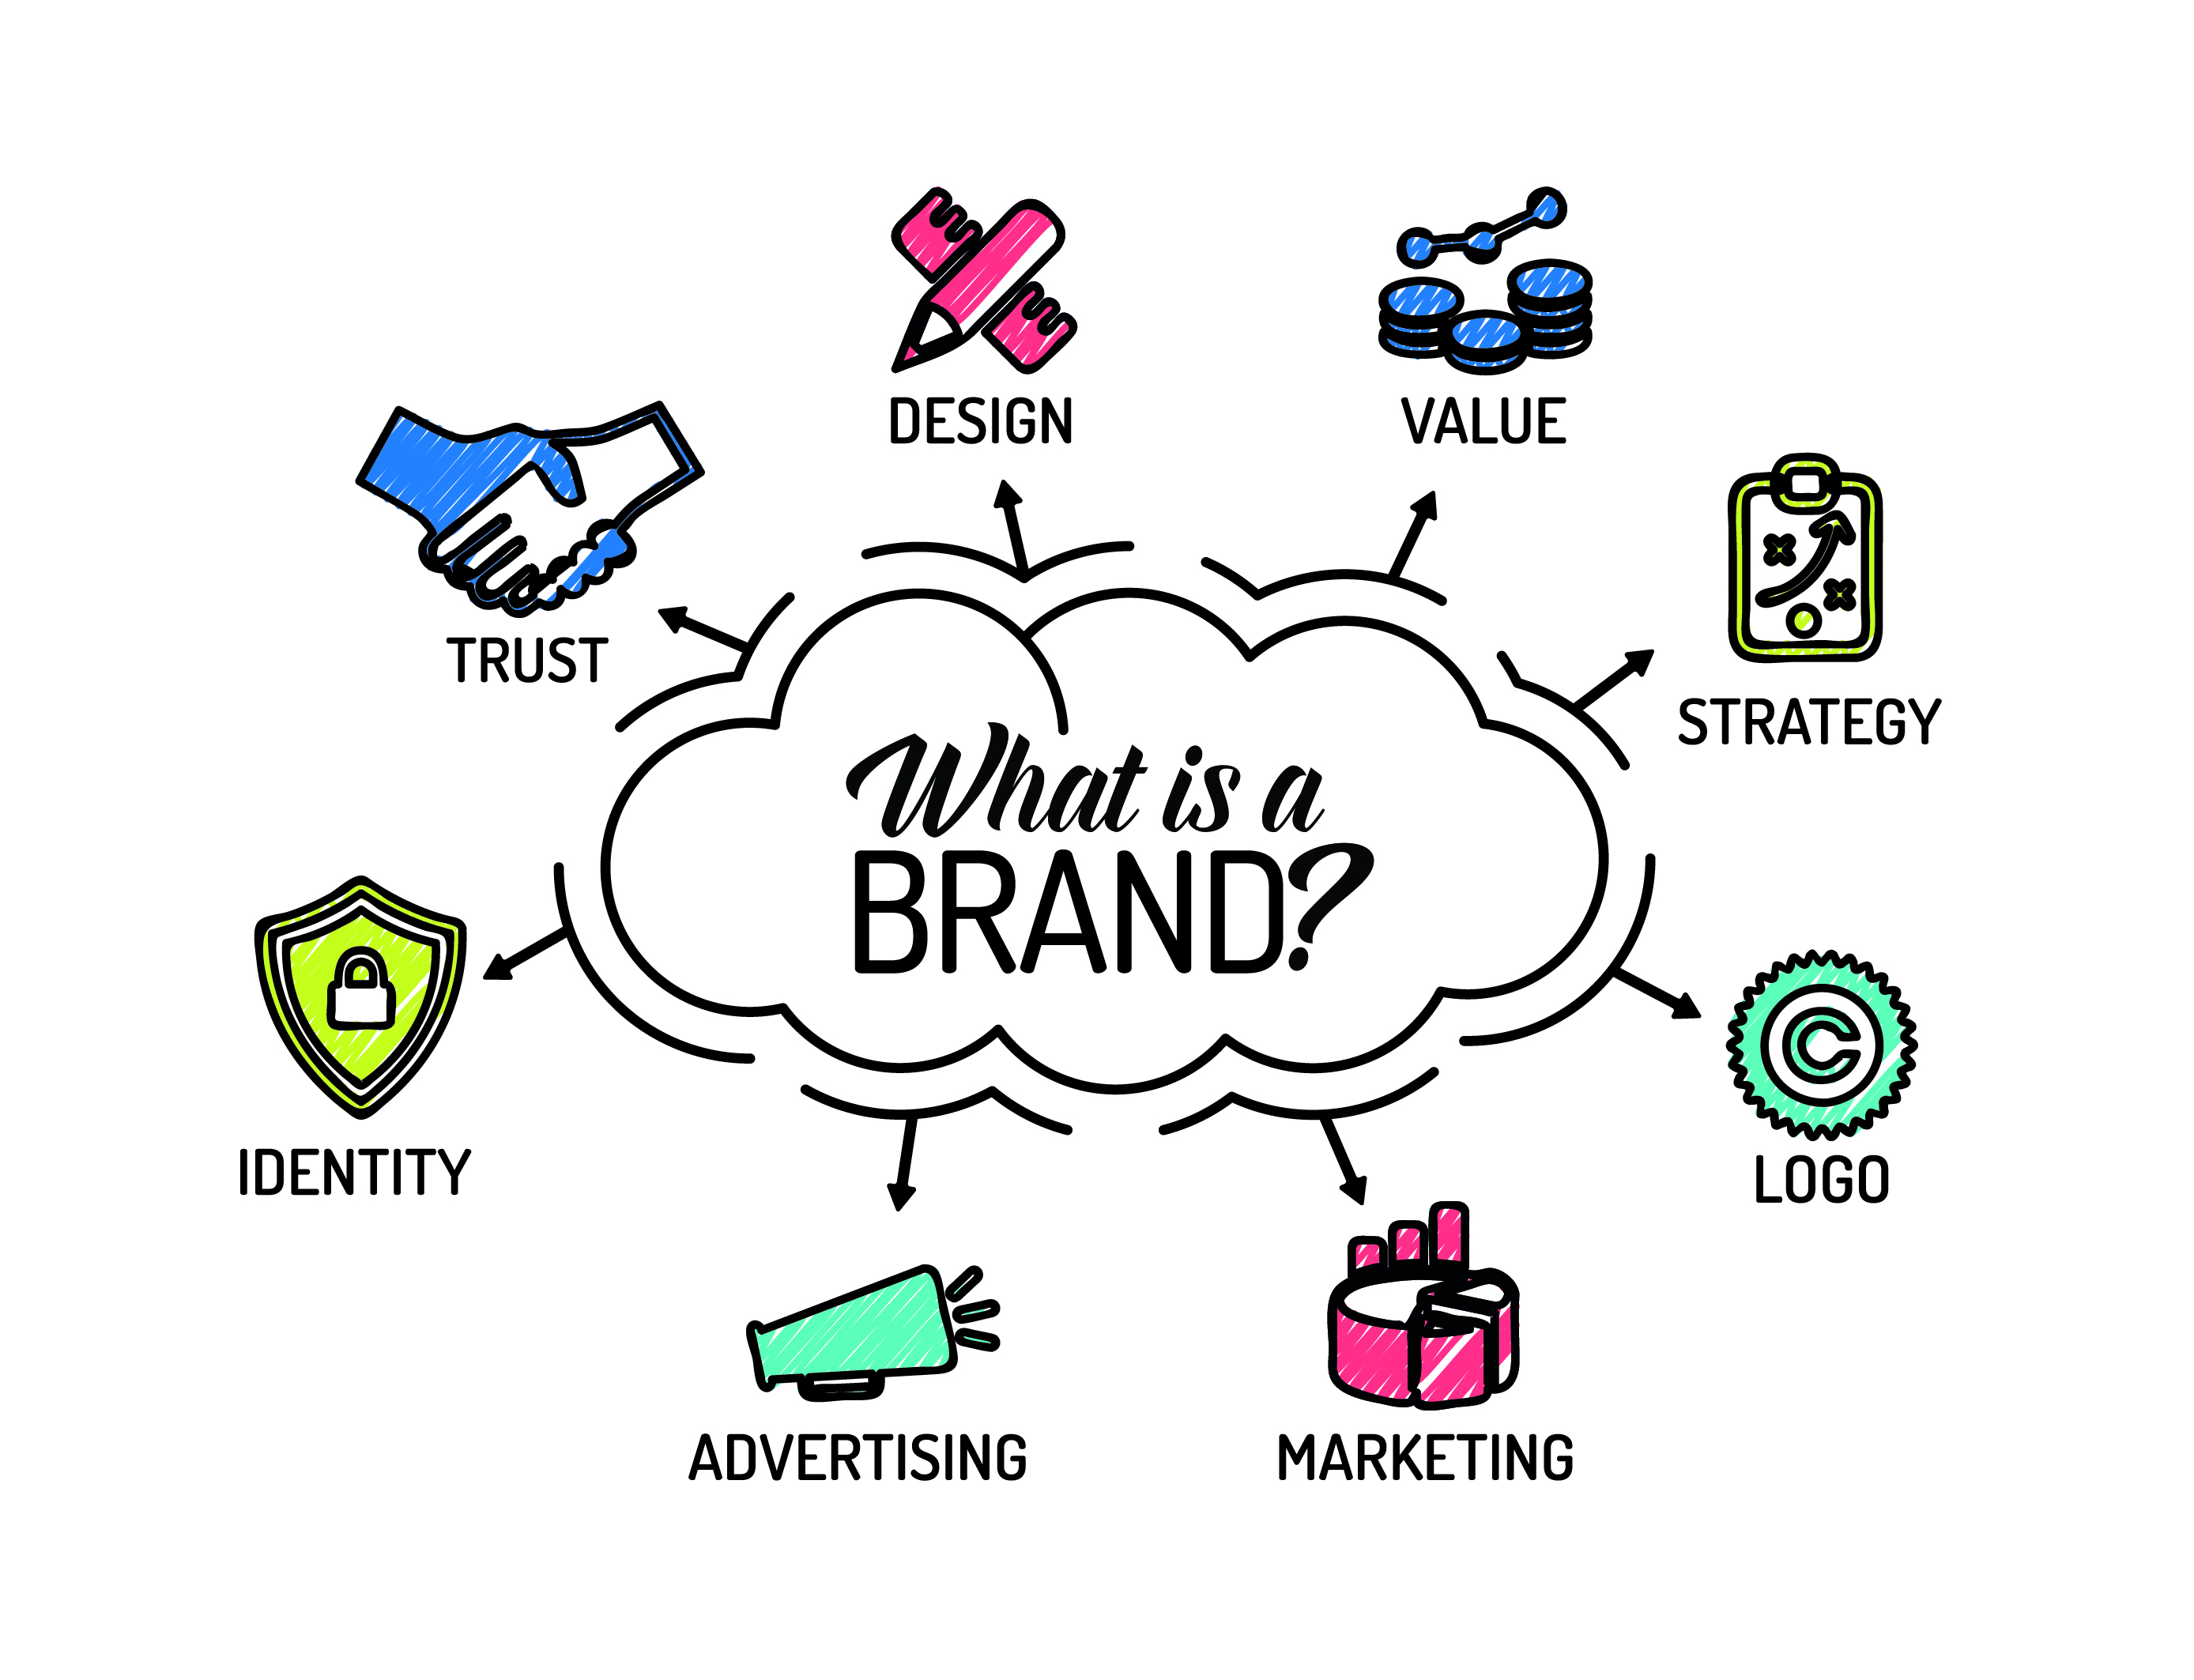 logo vs brand, what is the difference